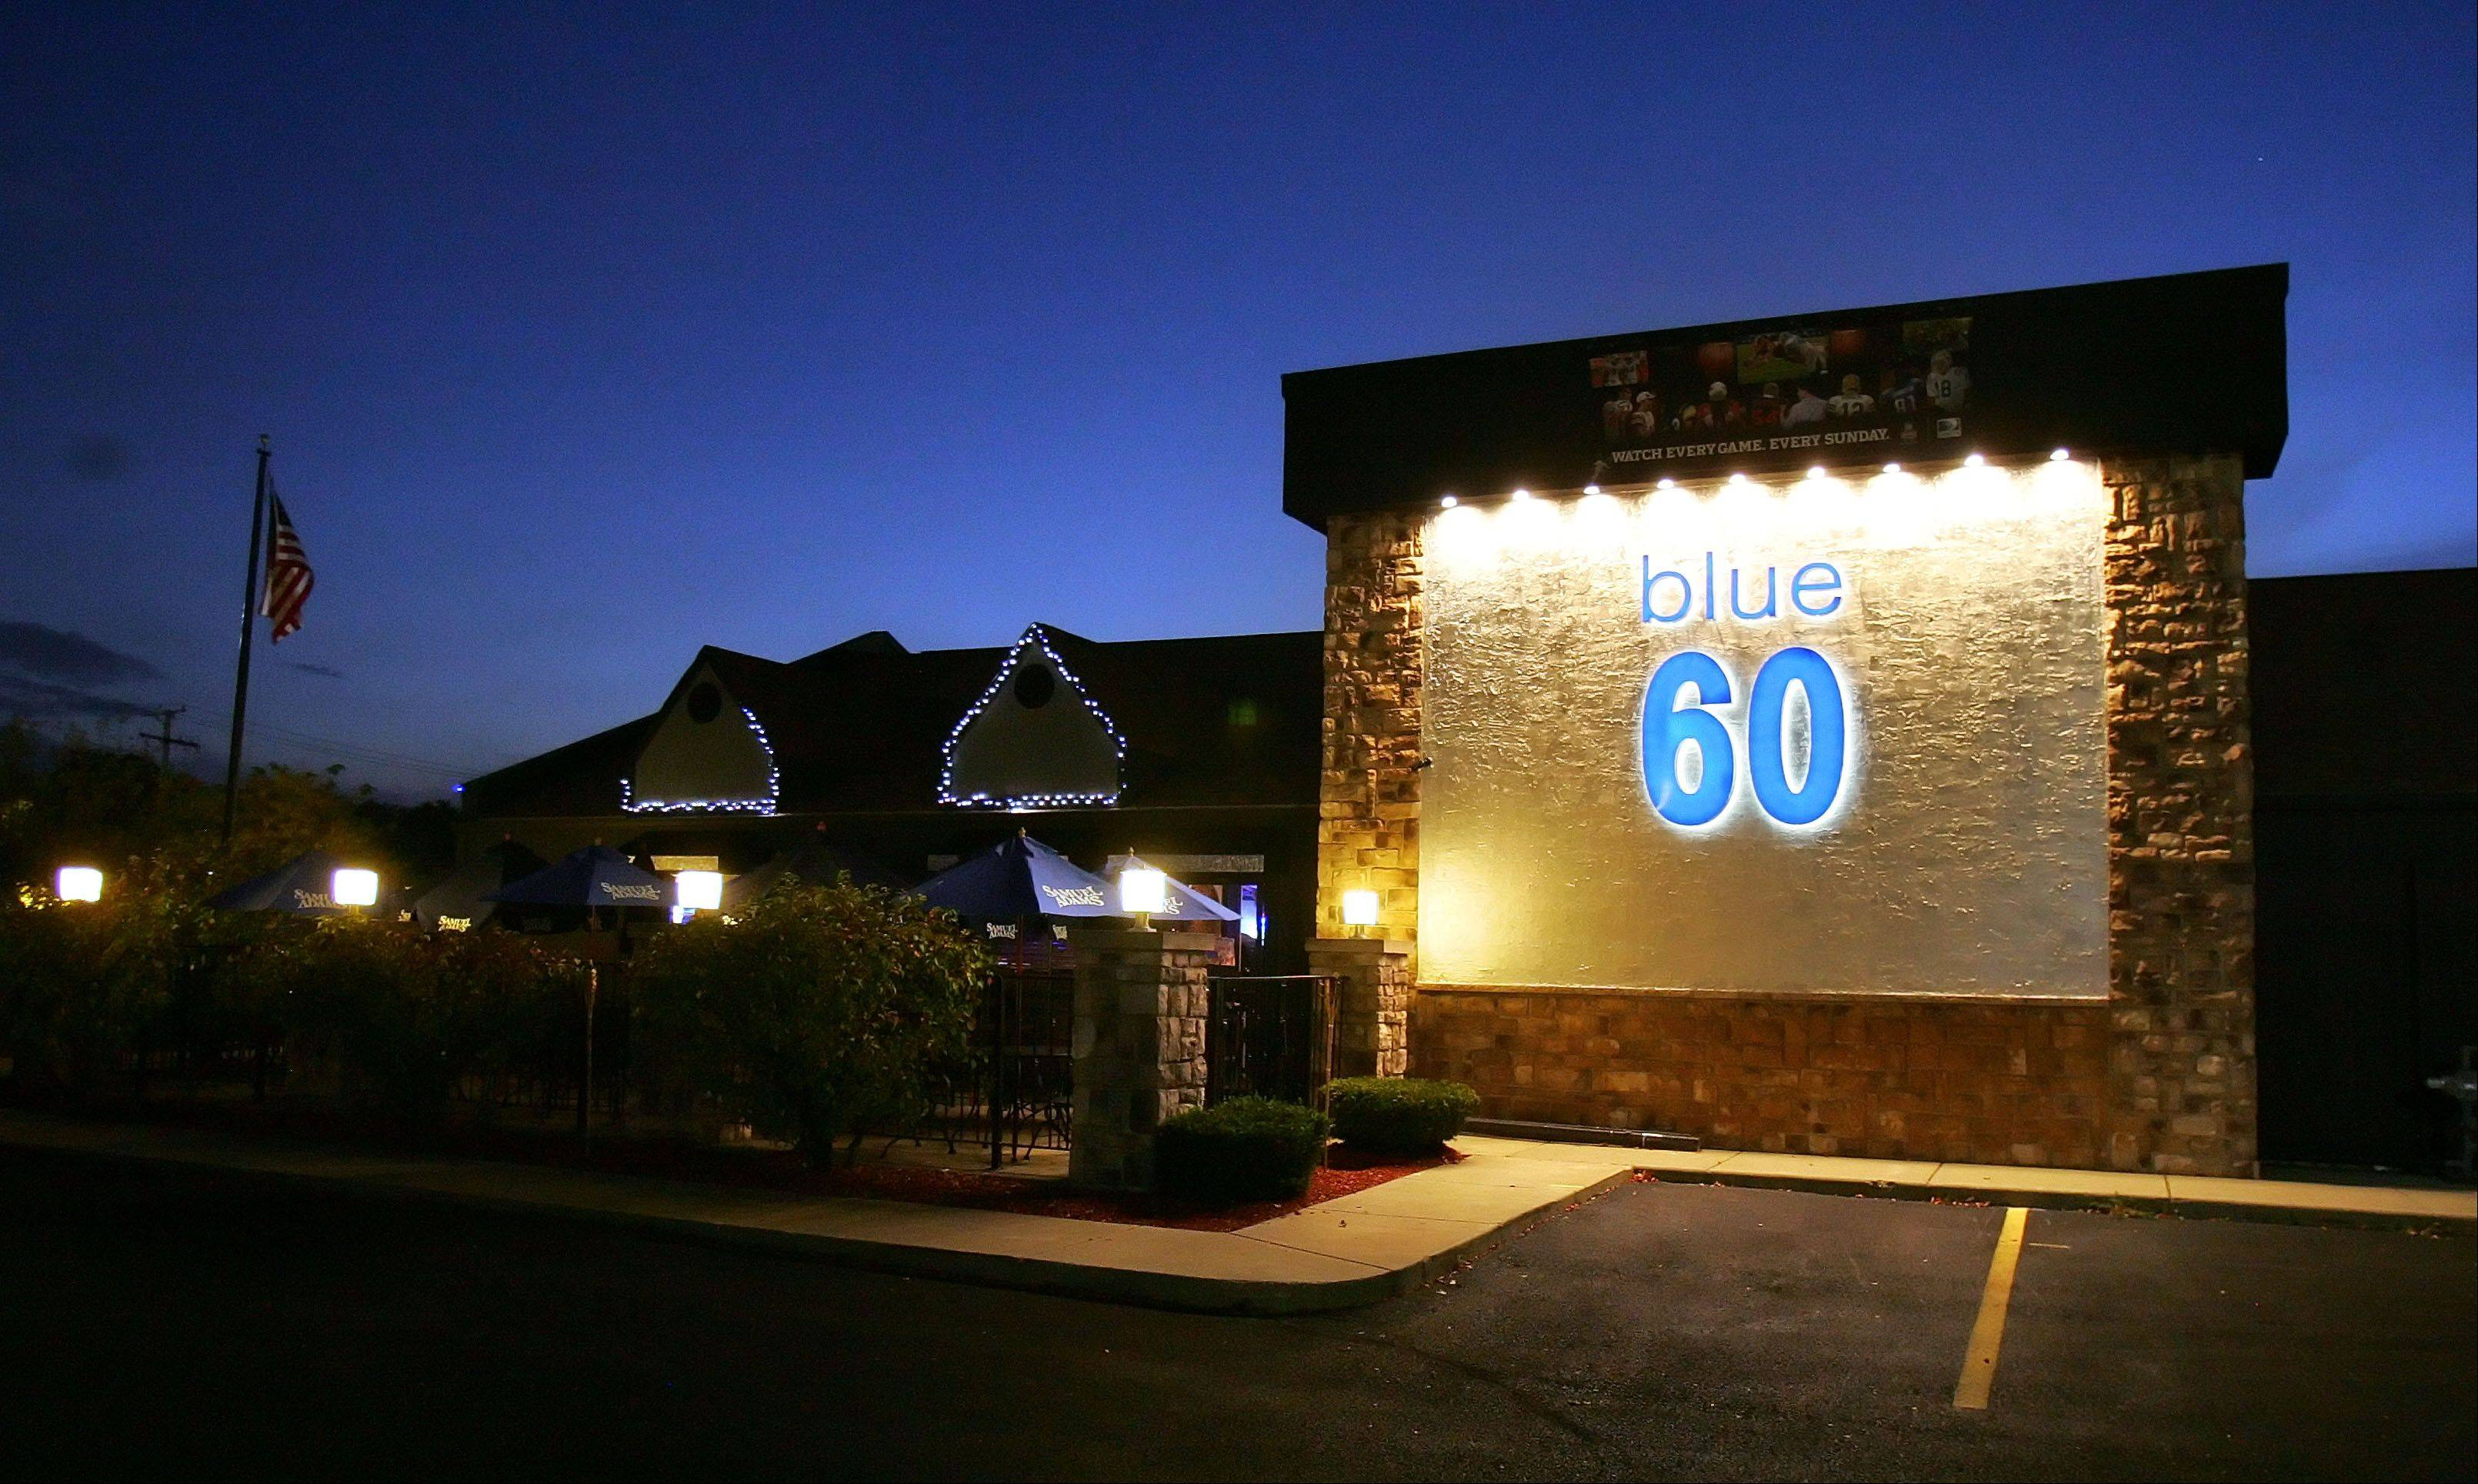 Blue 60 is the latest restaurant to open on the north side of Route 60 just west of Route 45 in Mundelein. Village officials and its owner hope it will buck the trend of eateries having short life spans at the busy intersection.